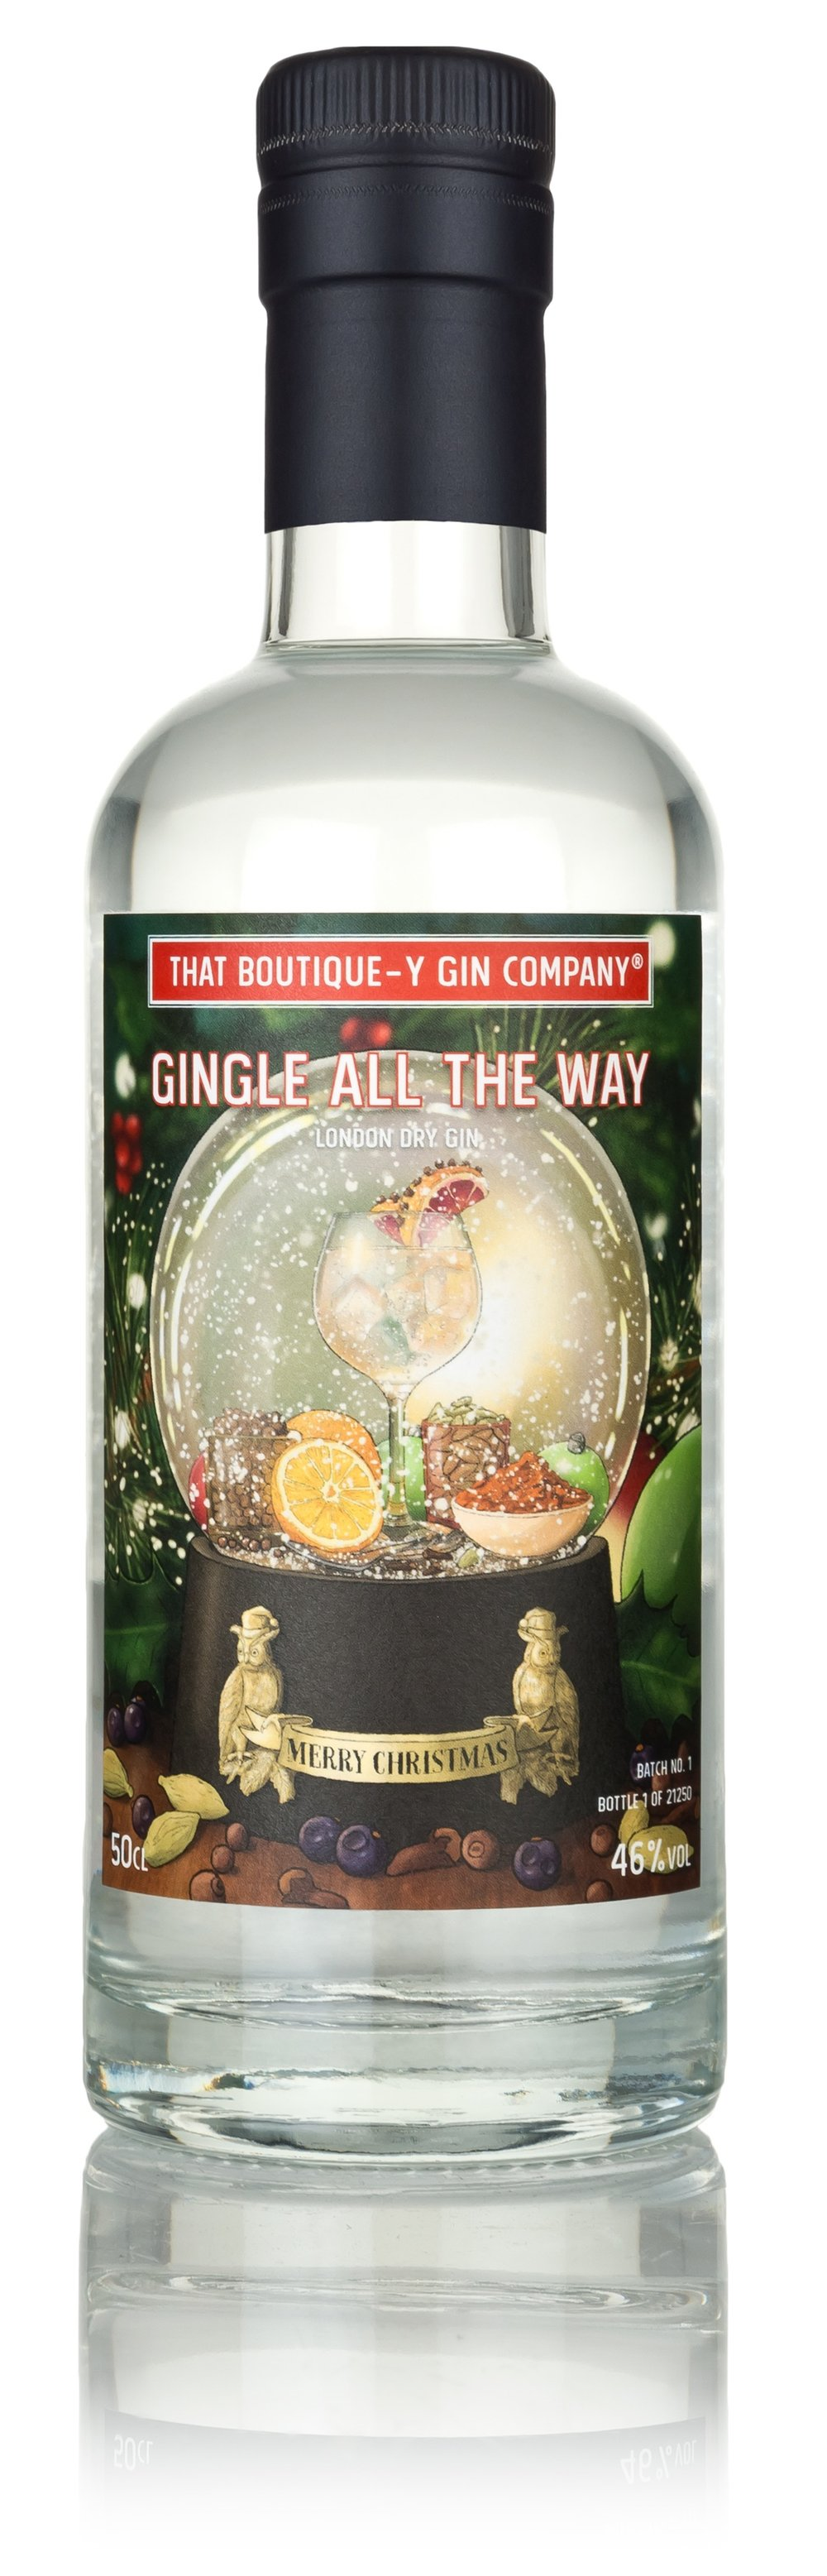 Gingle+All+The+Way+%28That+Boutique-y+Gin+Company%29.jpg